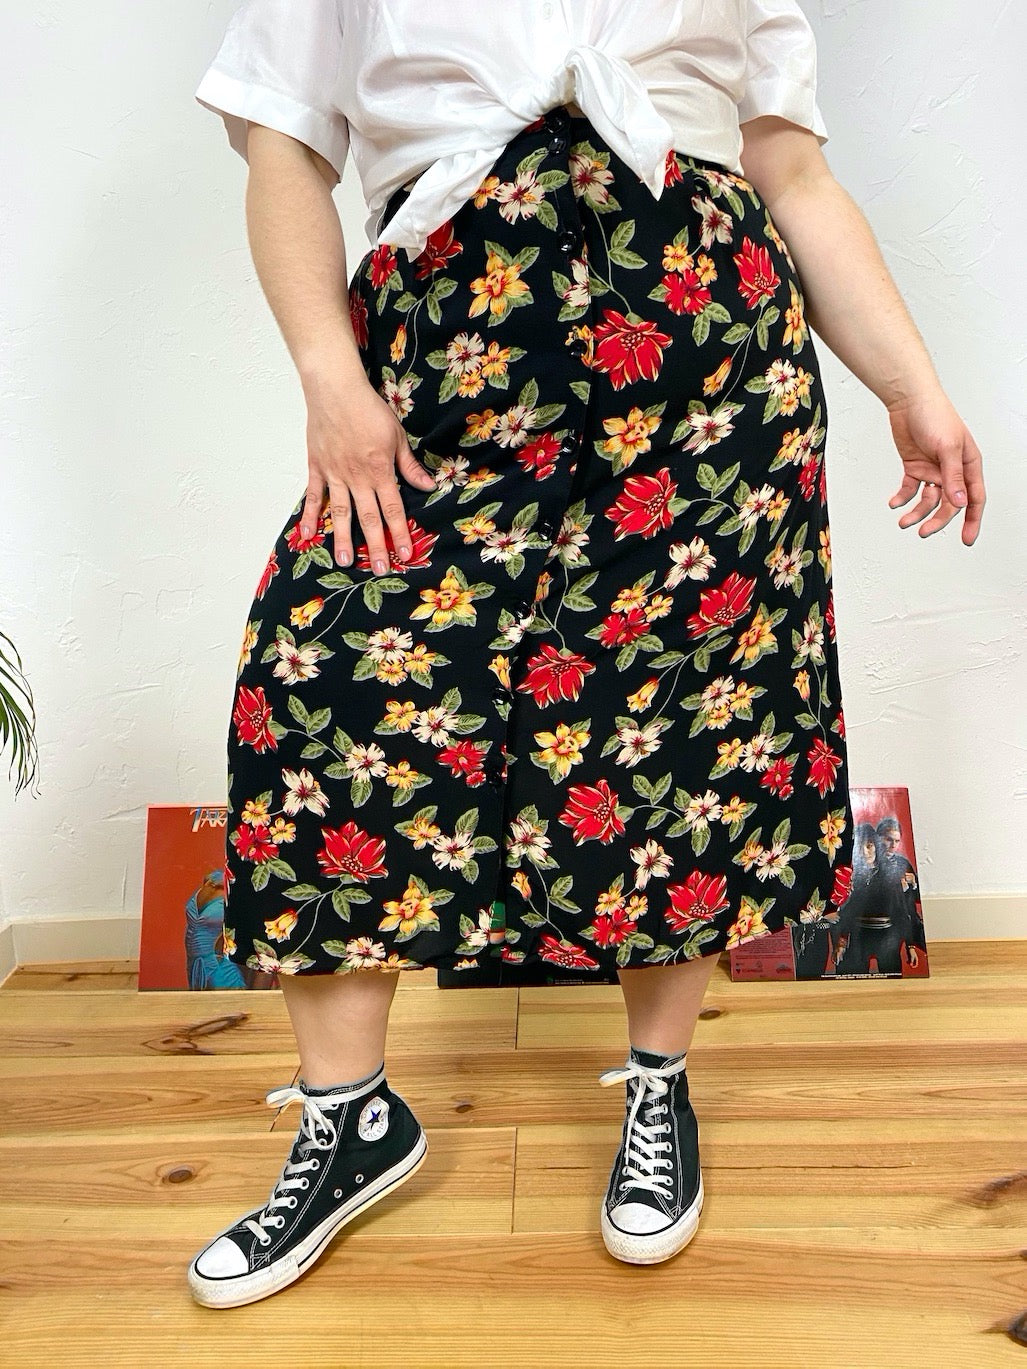 UK18/20 Flower skirt 90s